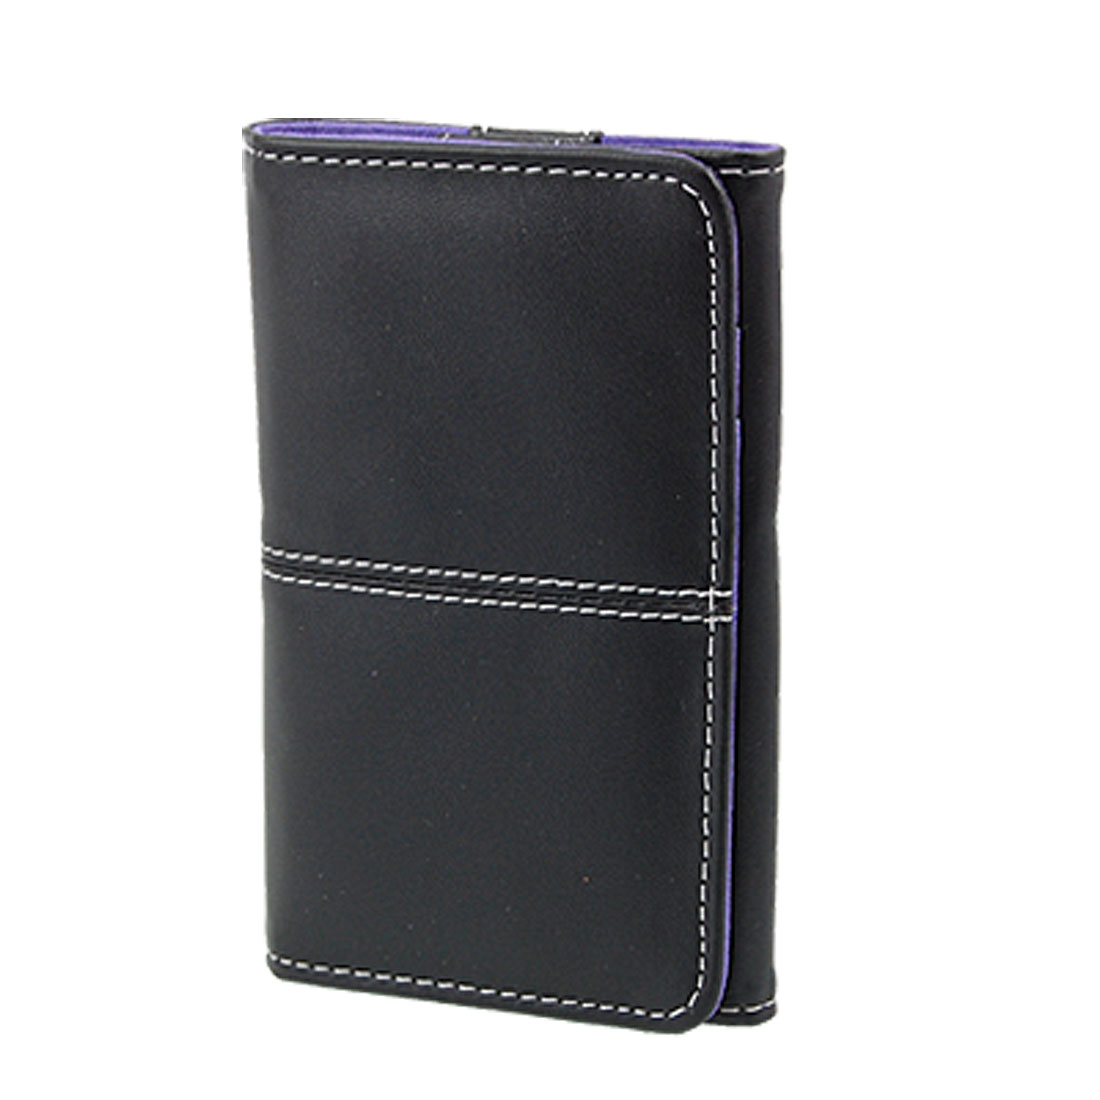 Black Purple Faux Leather Magnetic Pouch for iPhone 3G